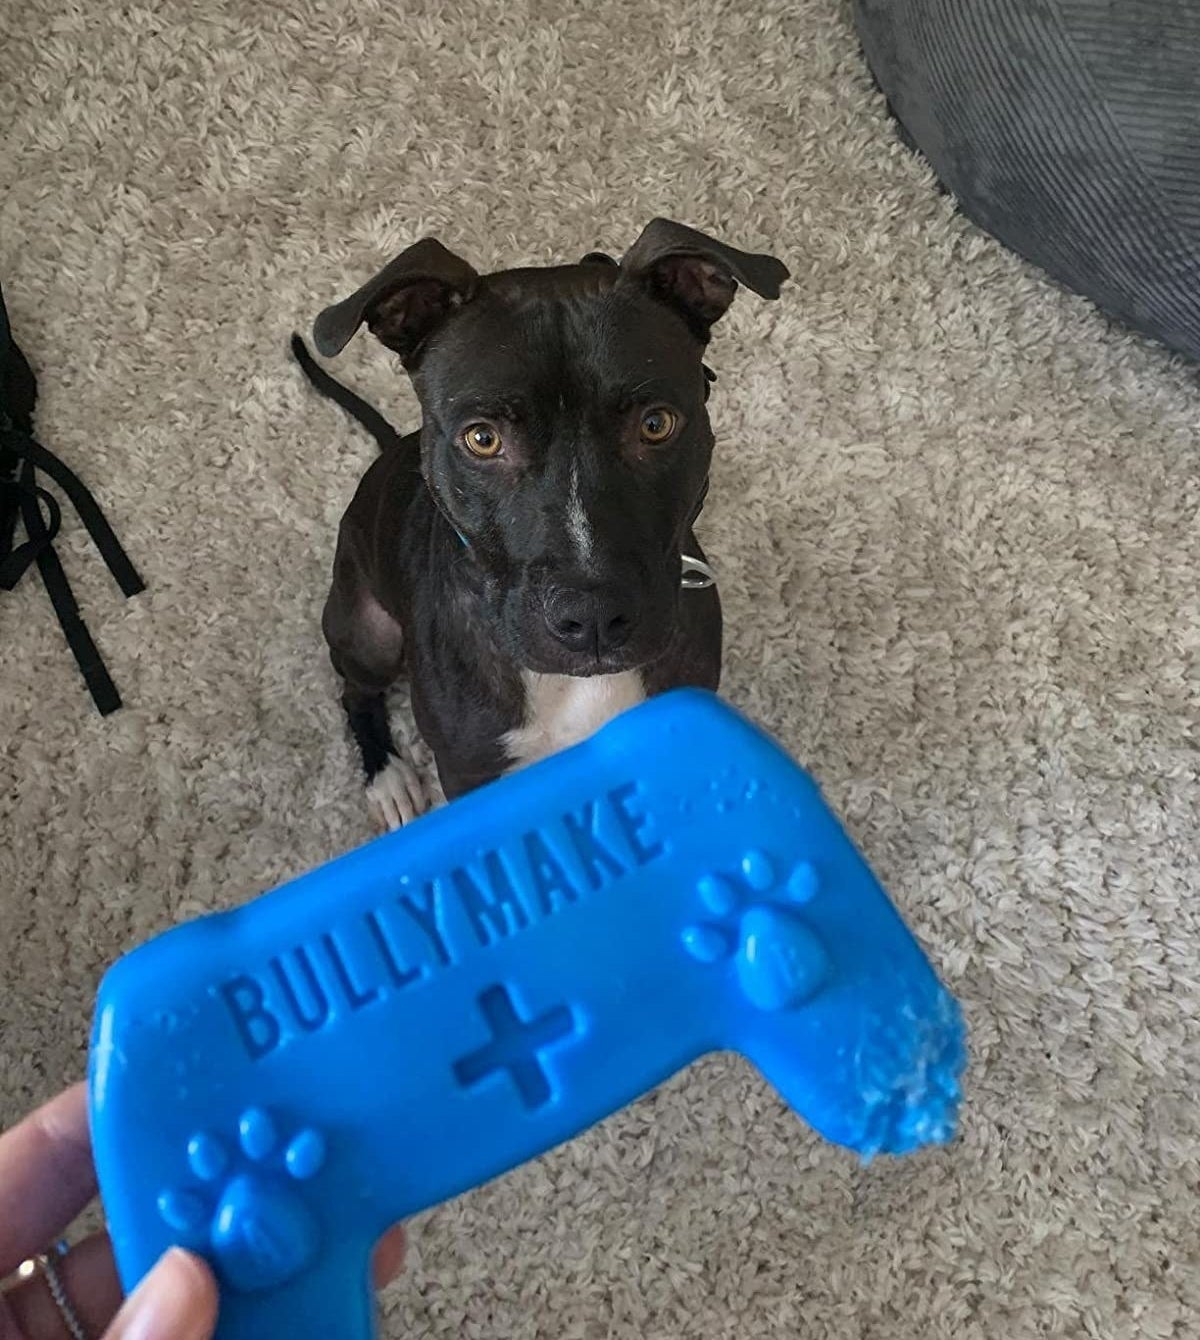 The toy, which looks like a video game controller and is bright blue